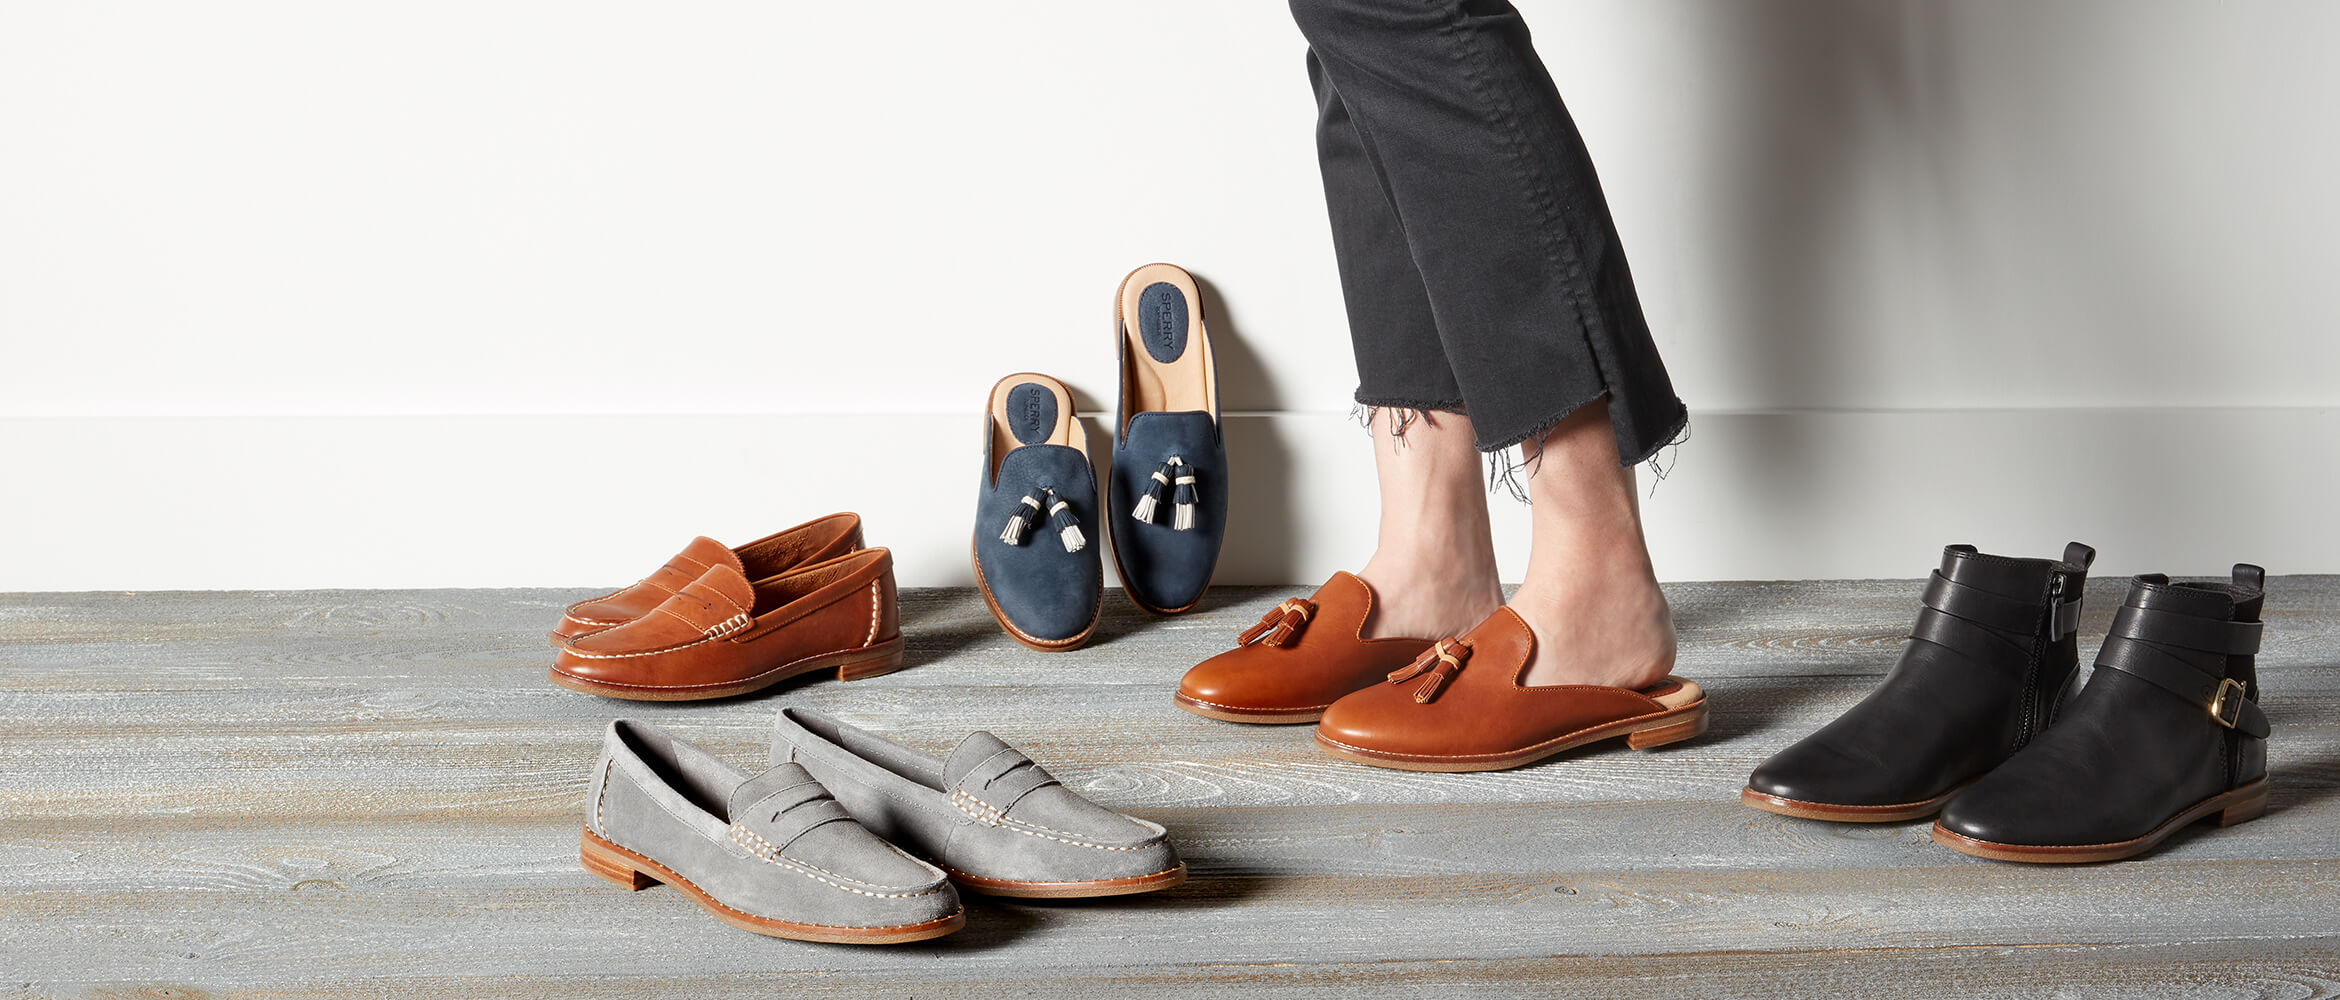 Pairs of shoes and feet.